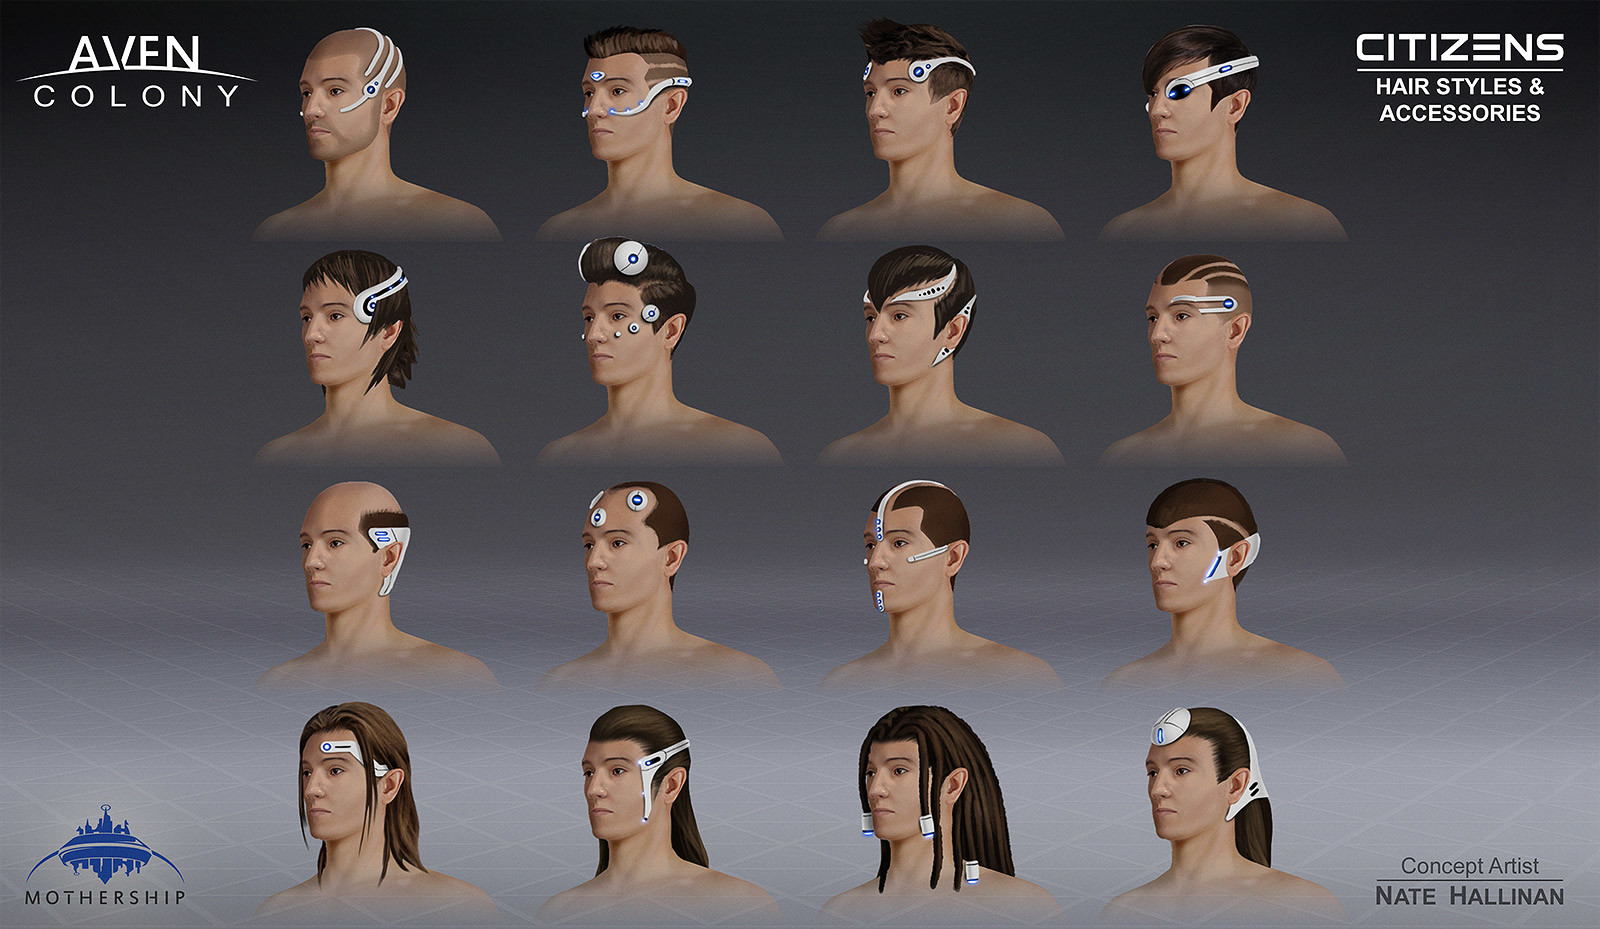 Possible Female hairstyles and accessories. (Not sure if in-game)